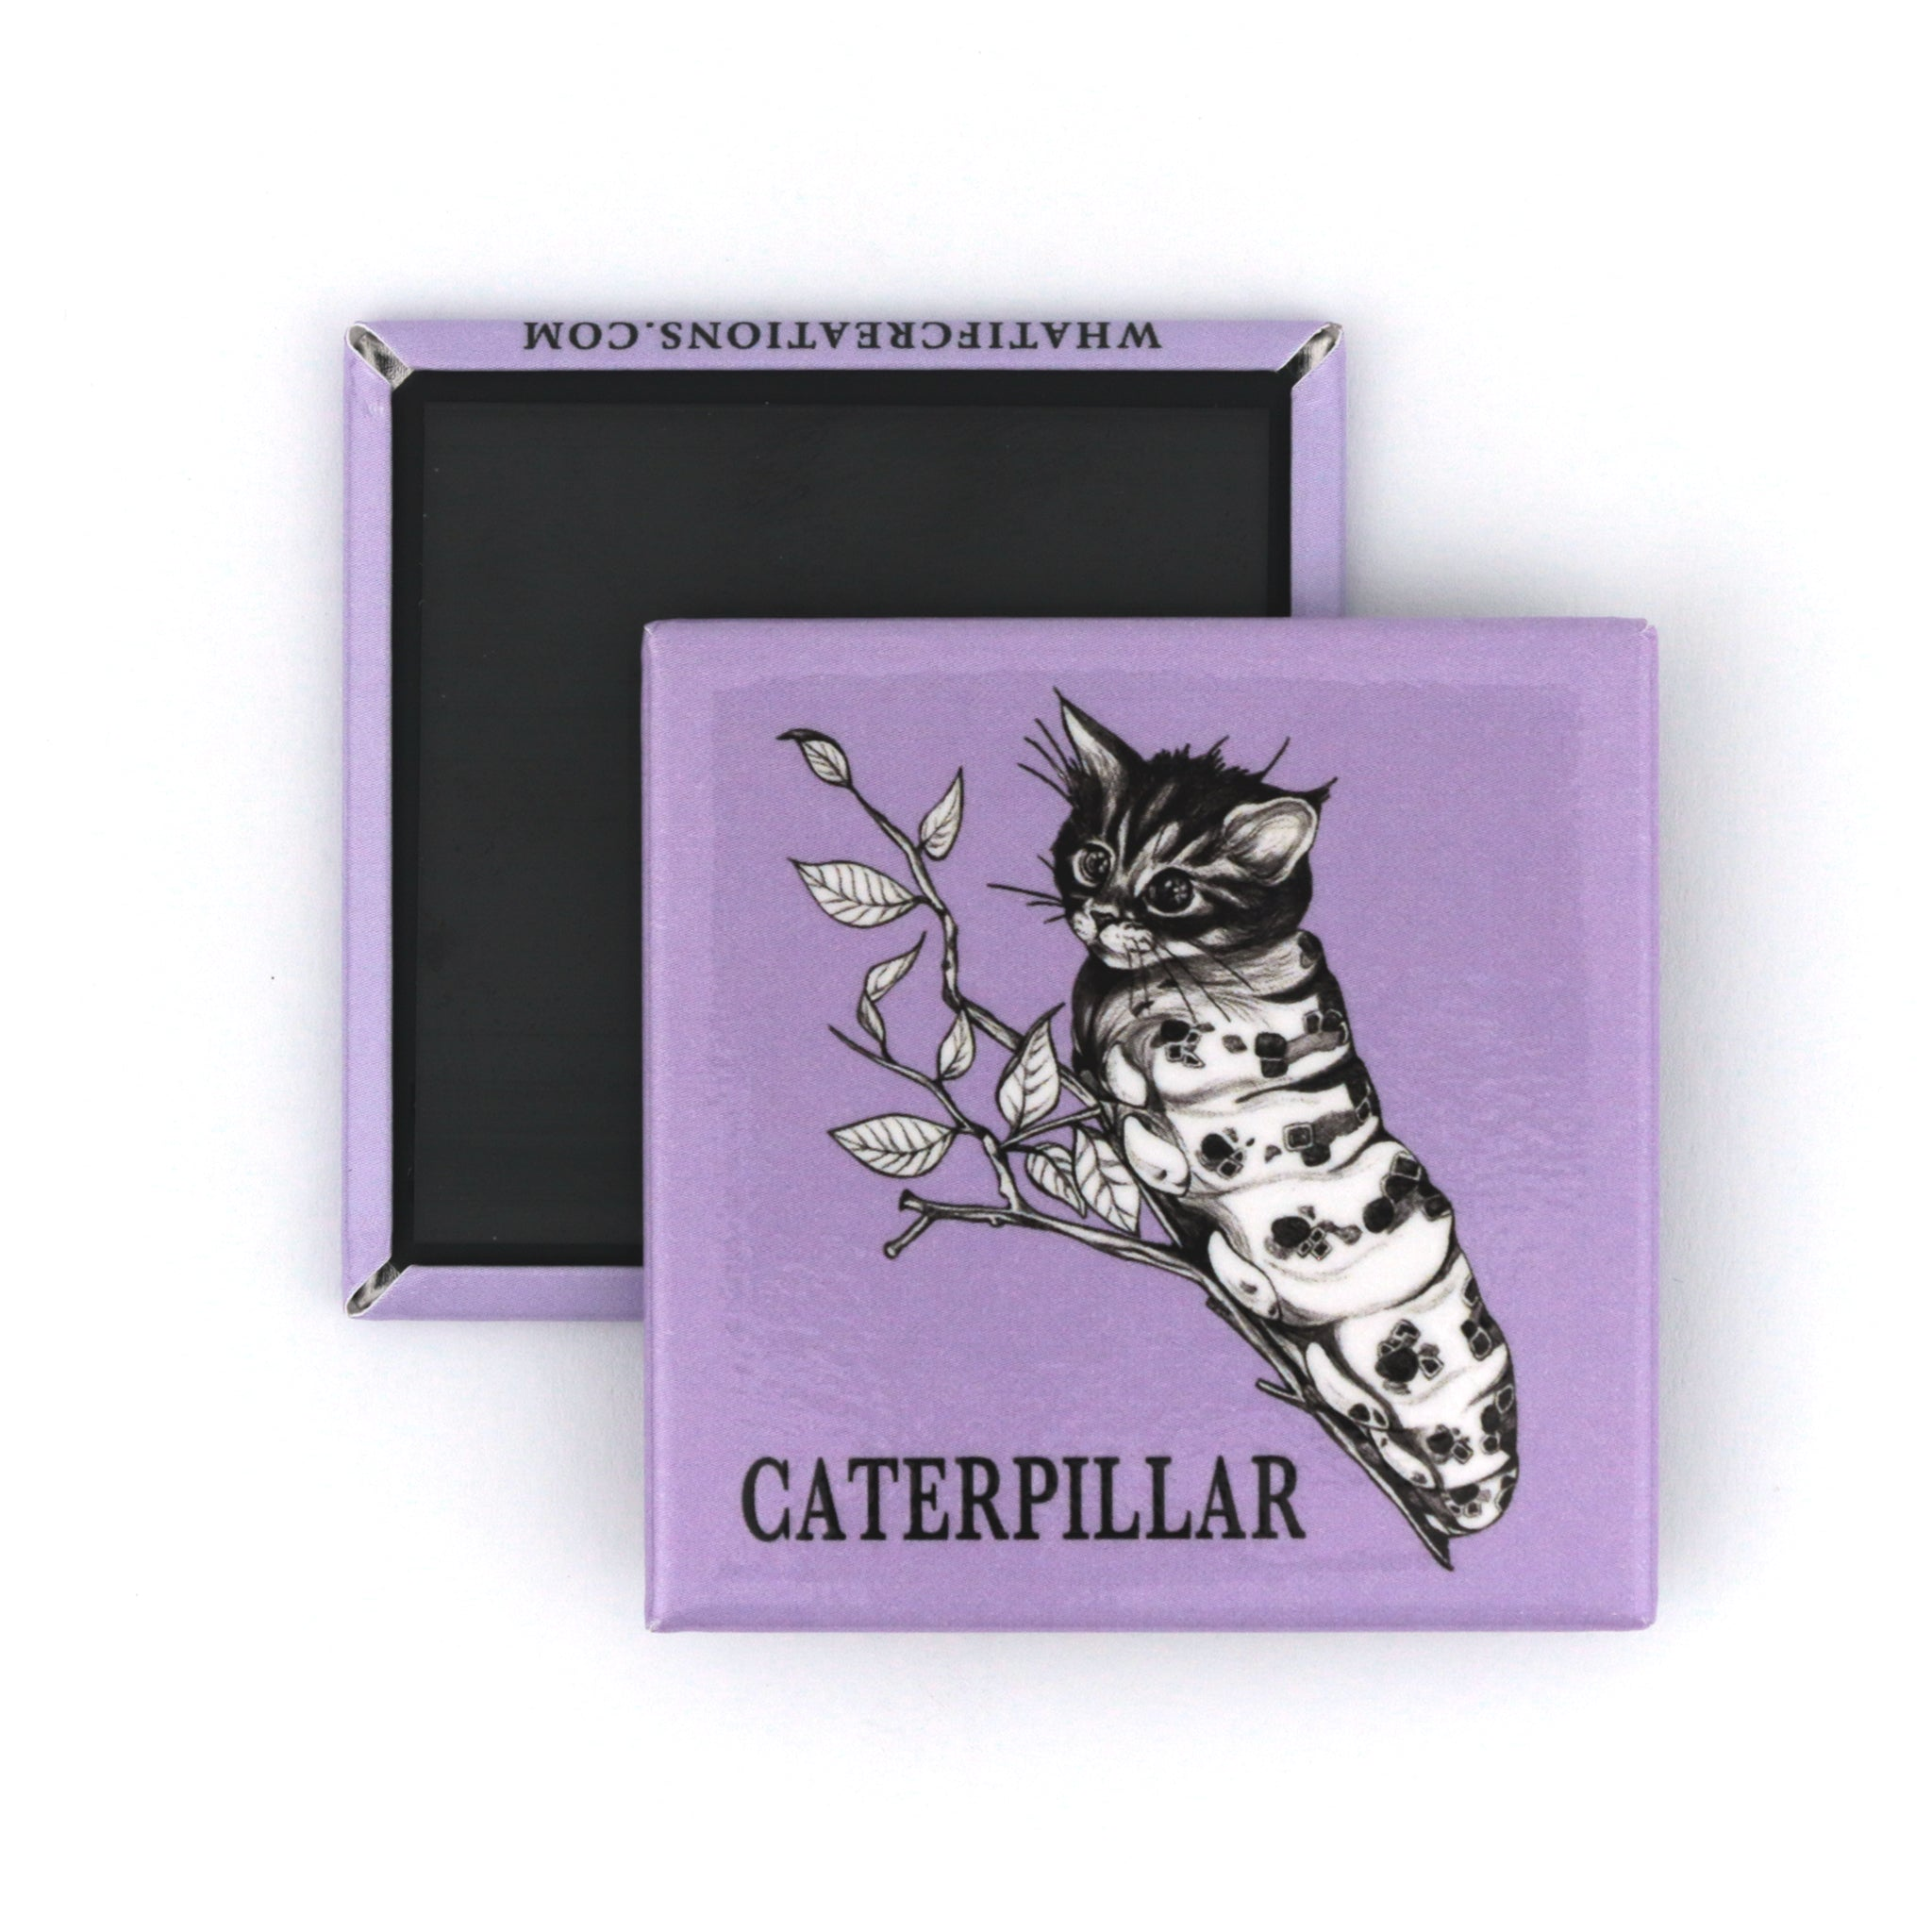 "Caterpillar 2"" Fridge Magnet"